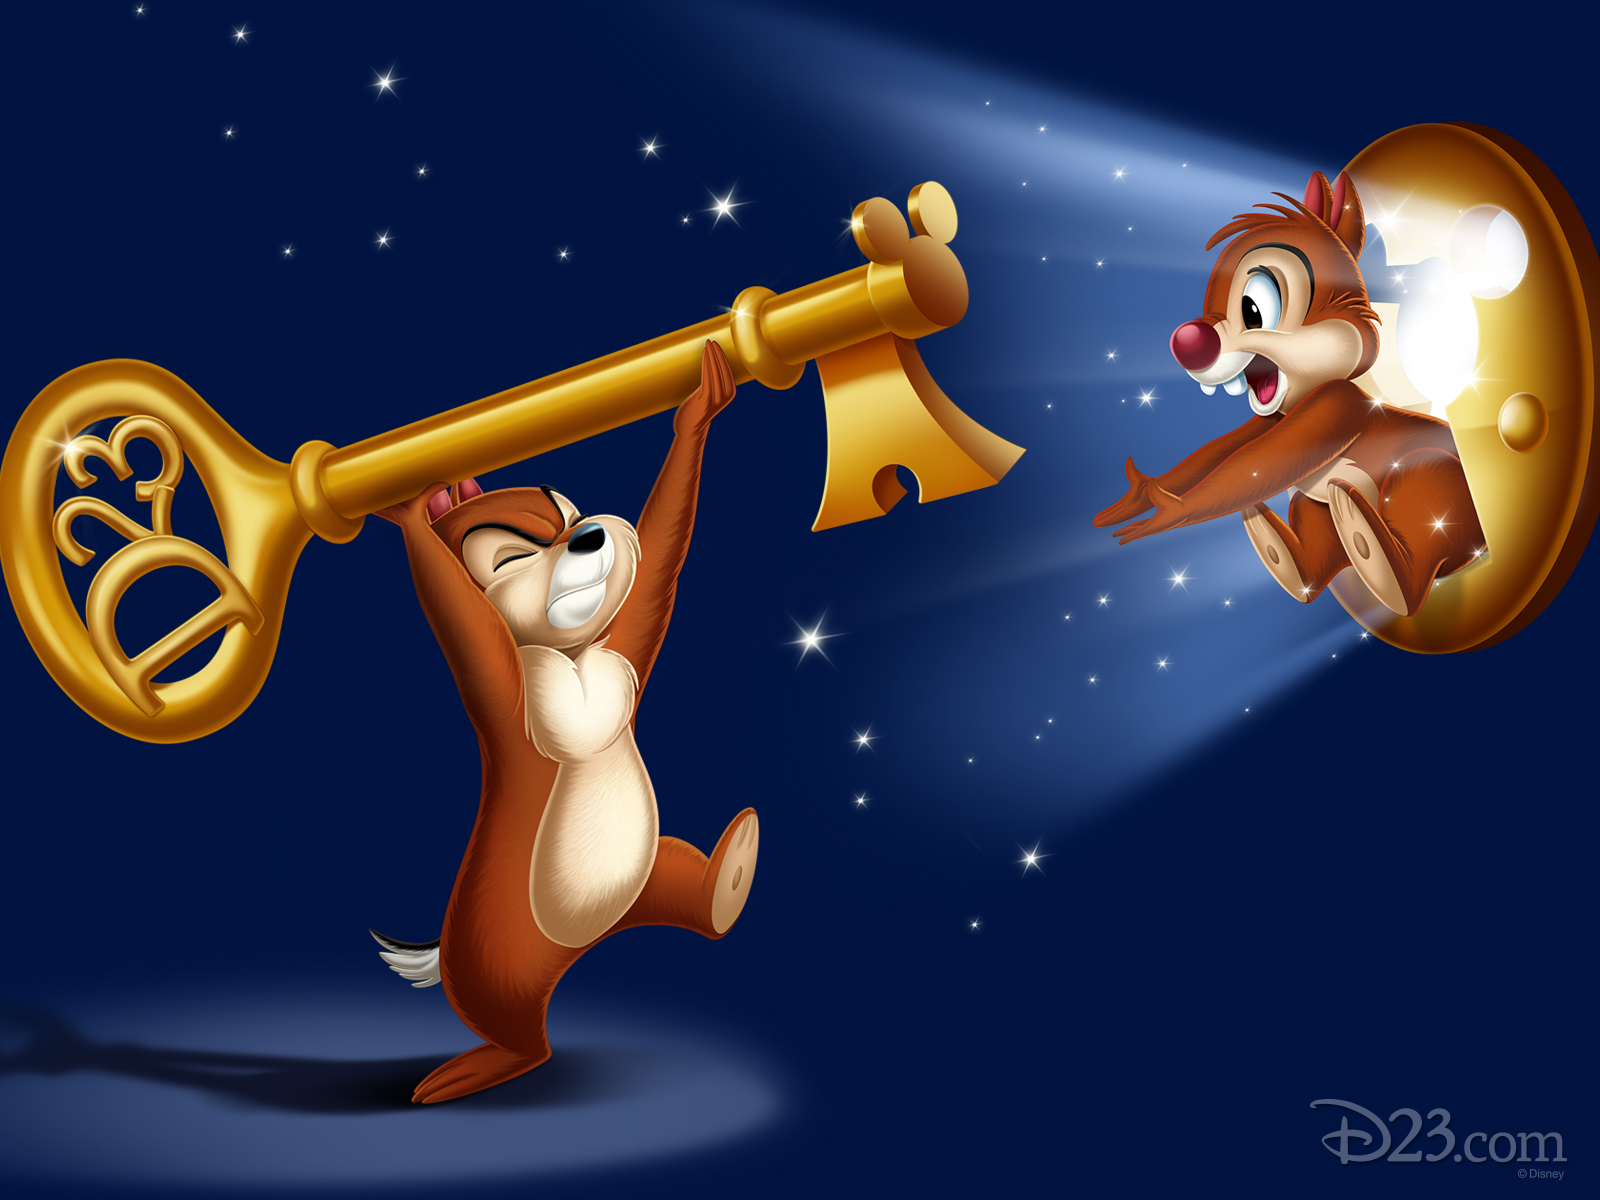 D23 39 s unlock the magic d23 - Chip n dale wallpapers free download ...